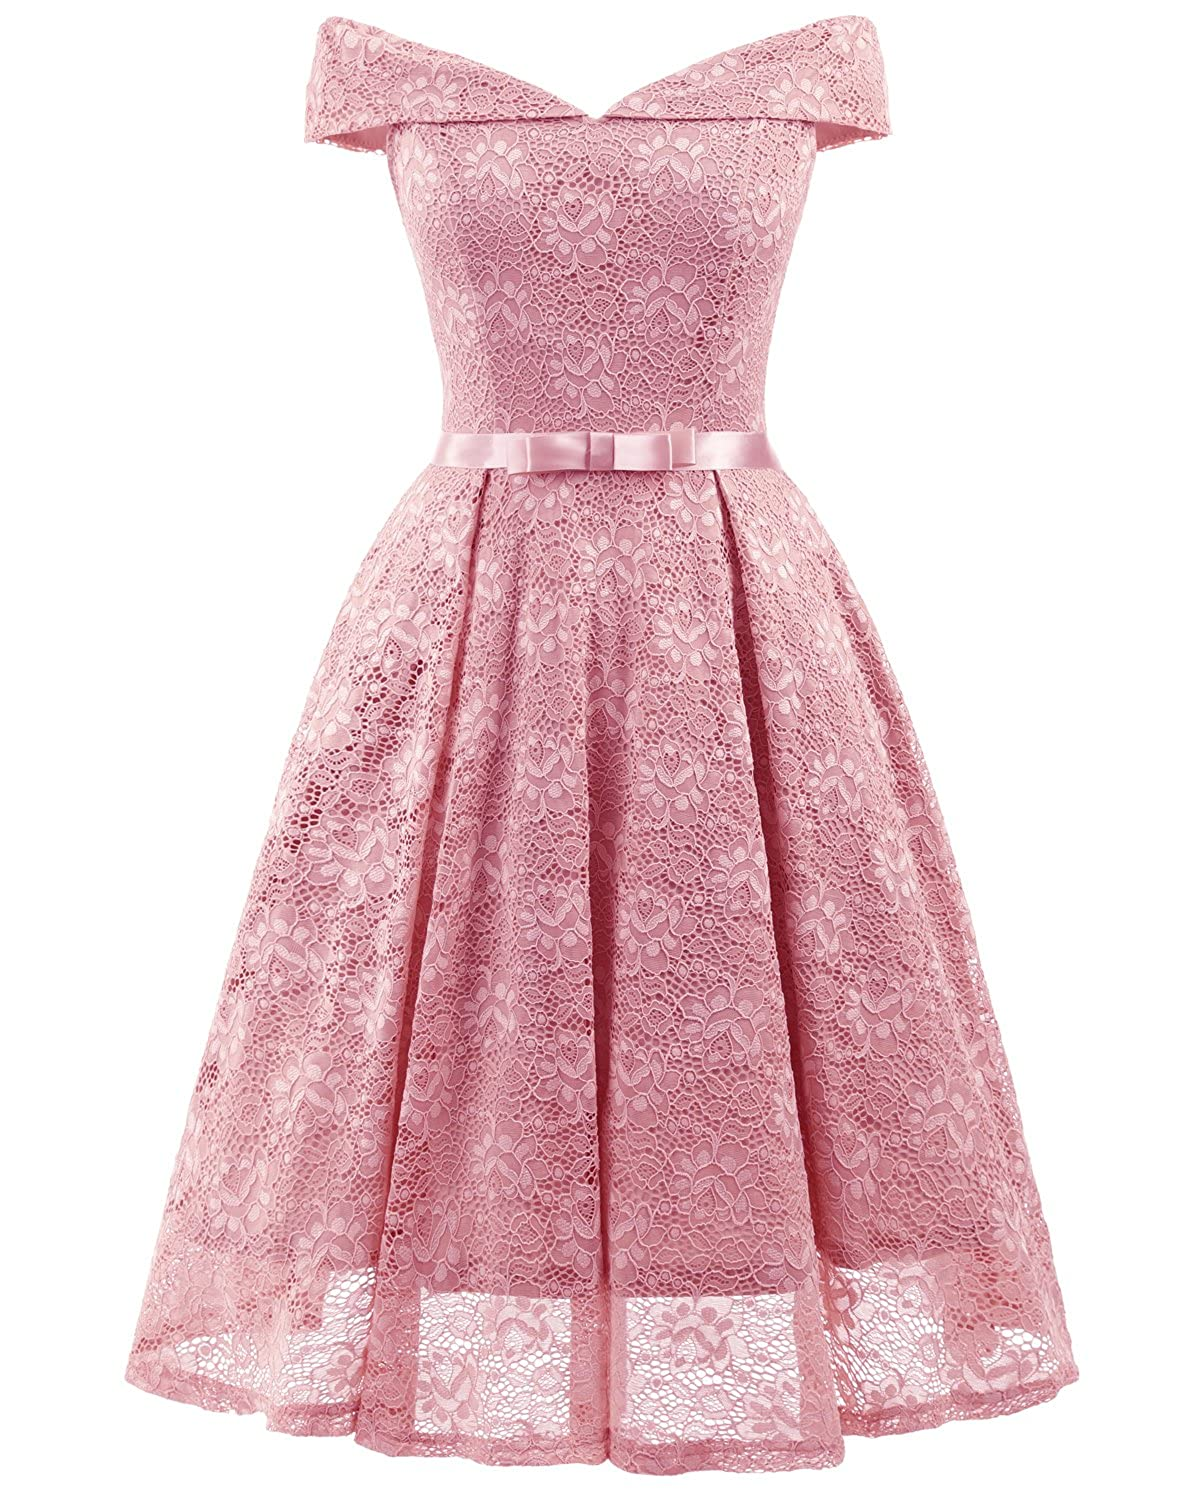 Bright Deer Women Bardot Lace Vintage Midi Skater Dress Party Cocktail Special Occasion